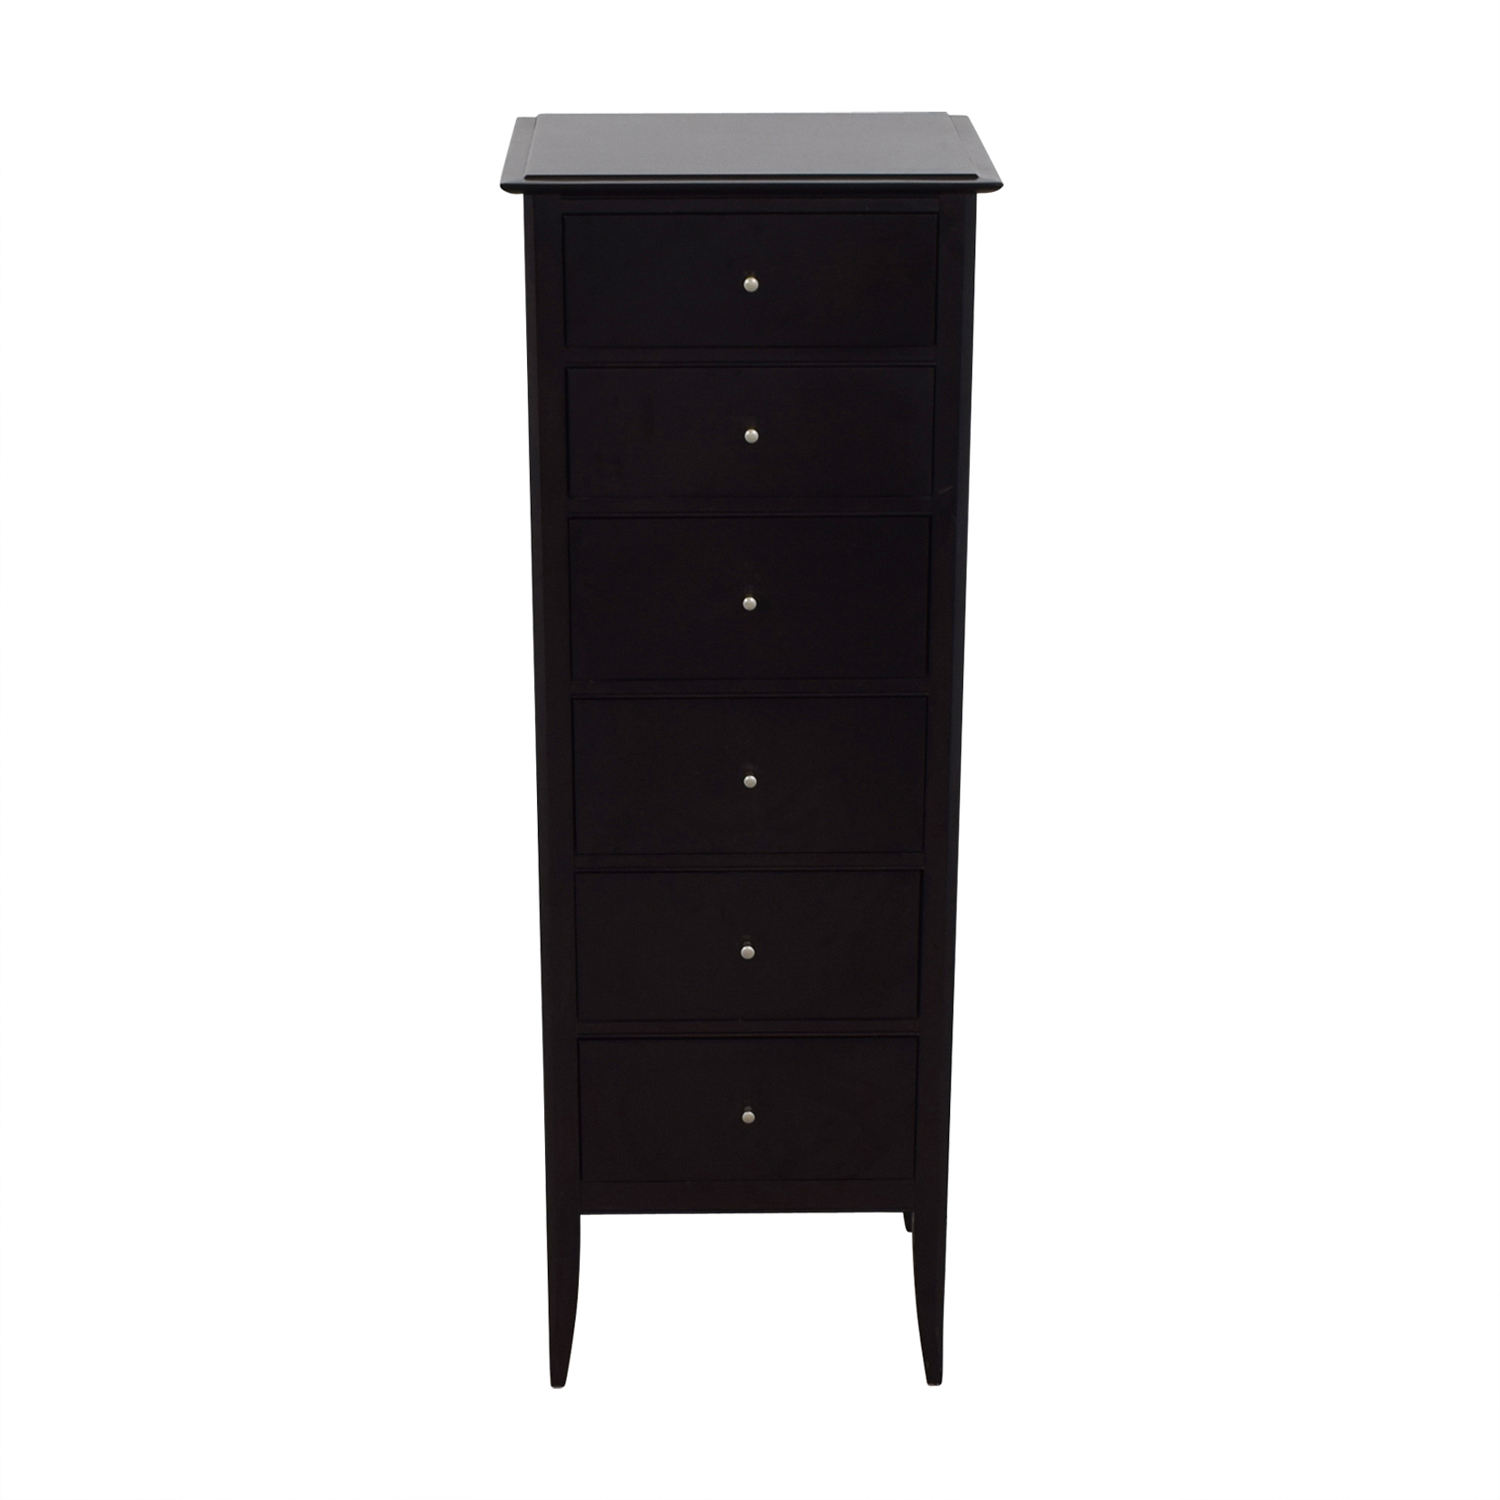 Crate & Barrel Black Six-Drawer Tall Dresser sale